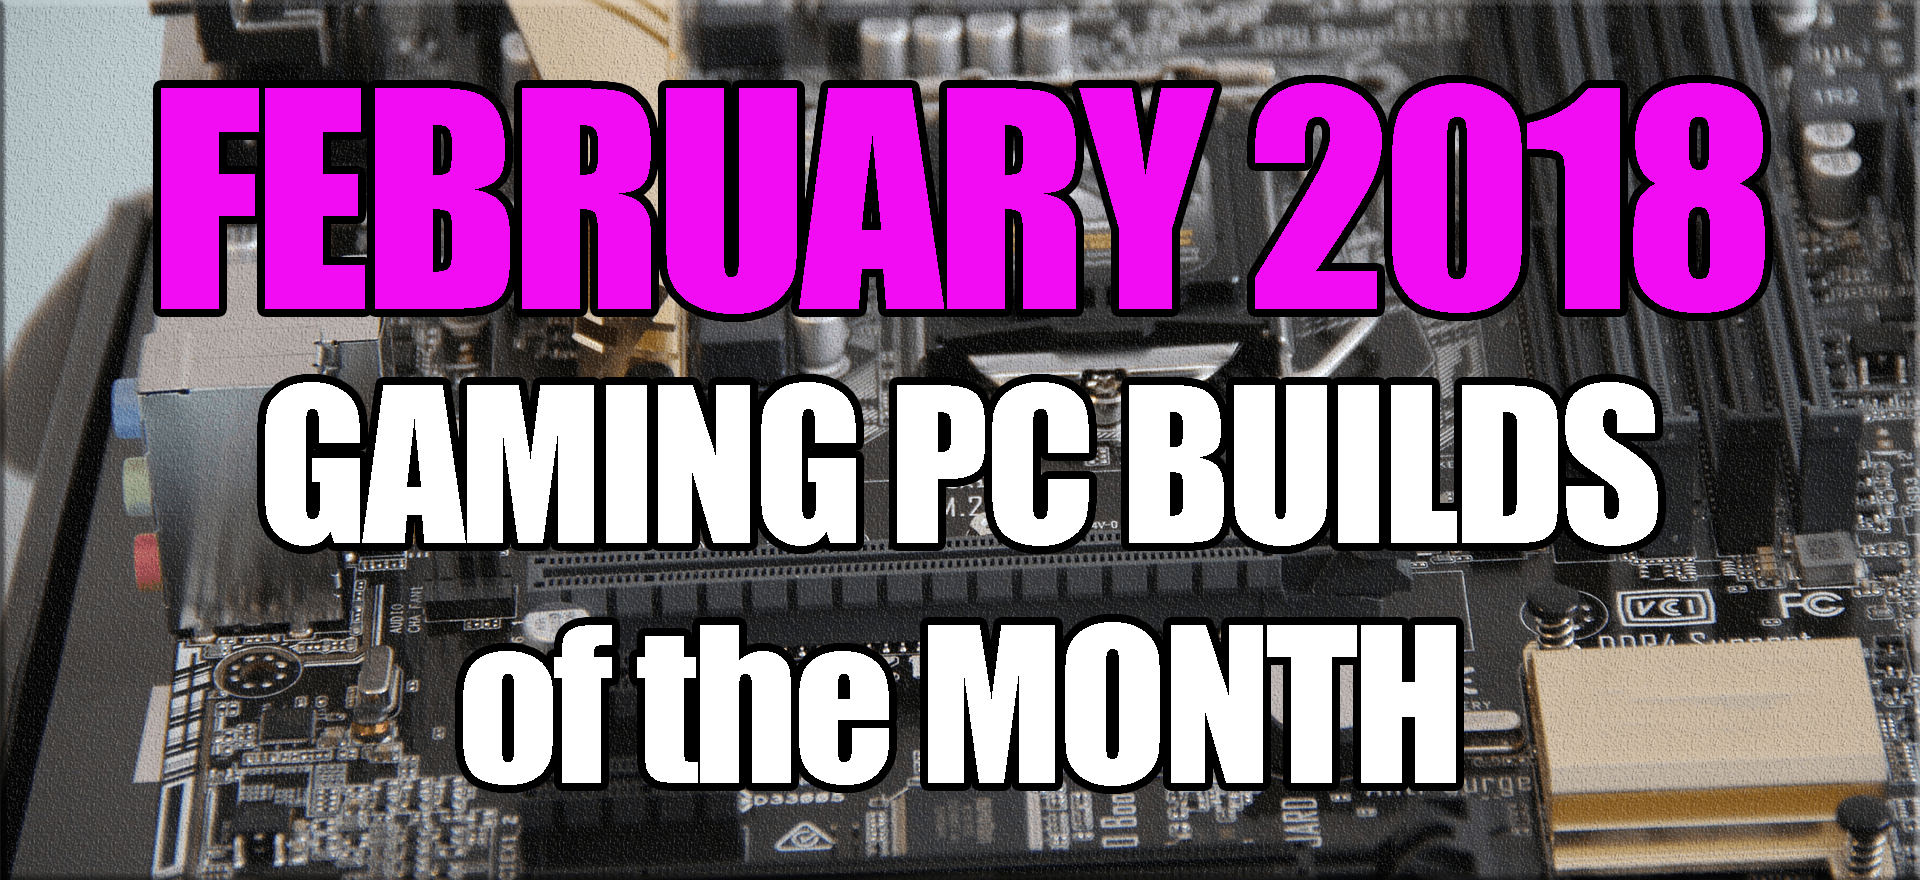 The Best Gaming PC Builds of the Month February 2018